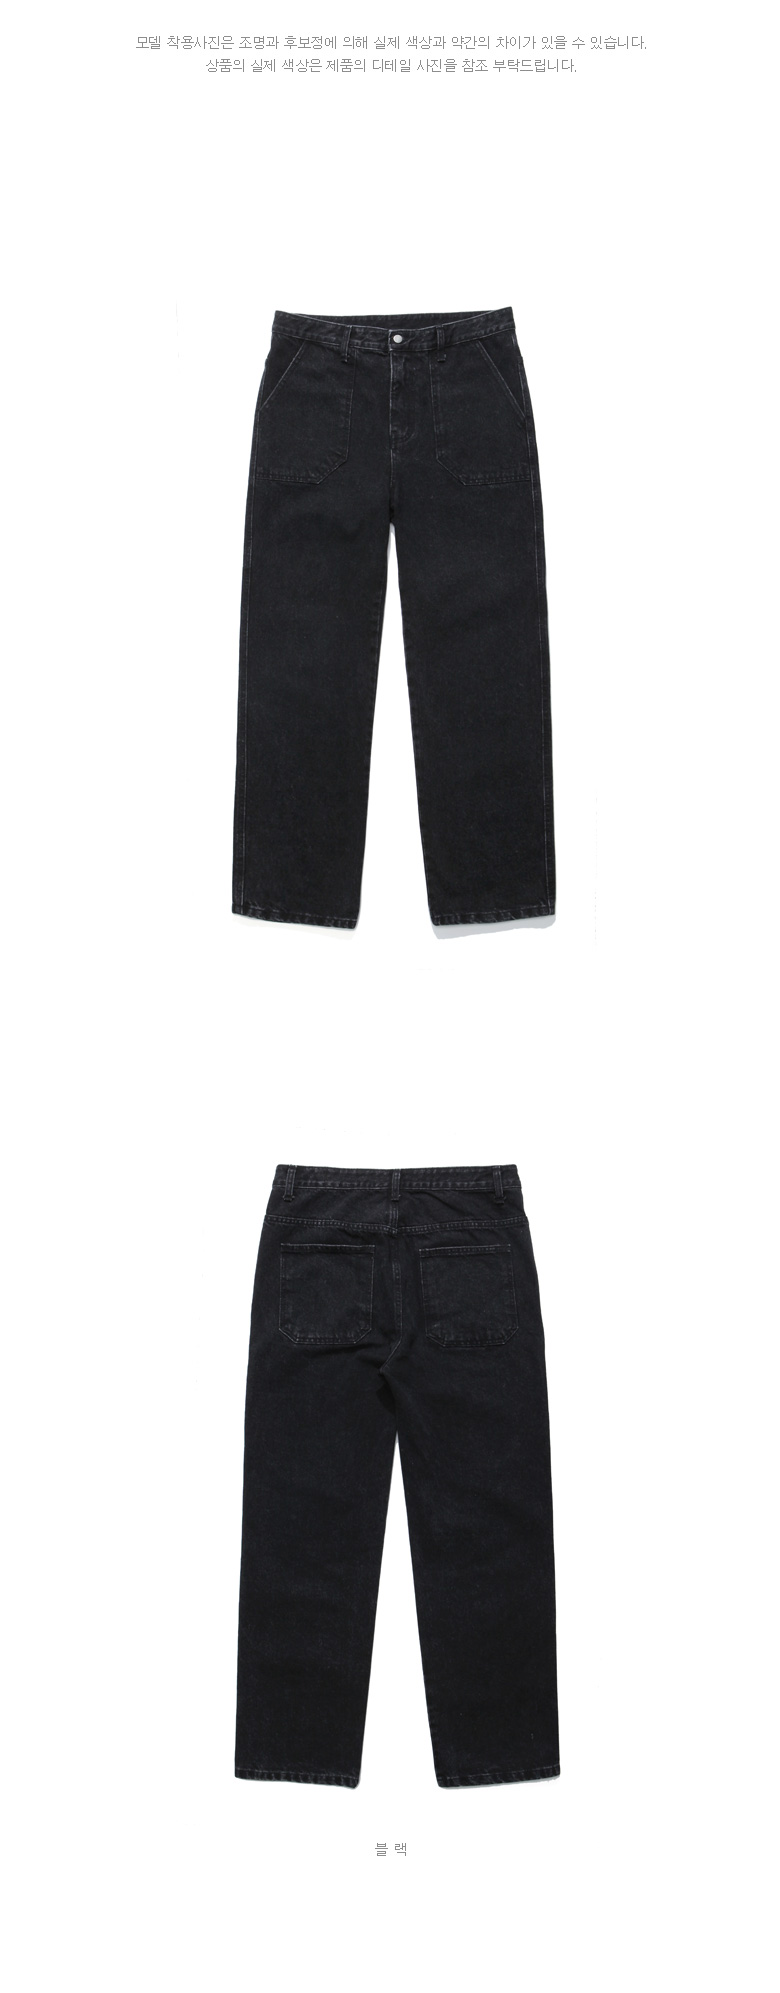 20190131_ps_complete_pant_black_uk_01.jpg